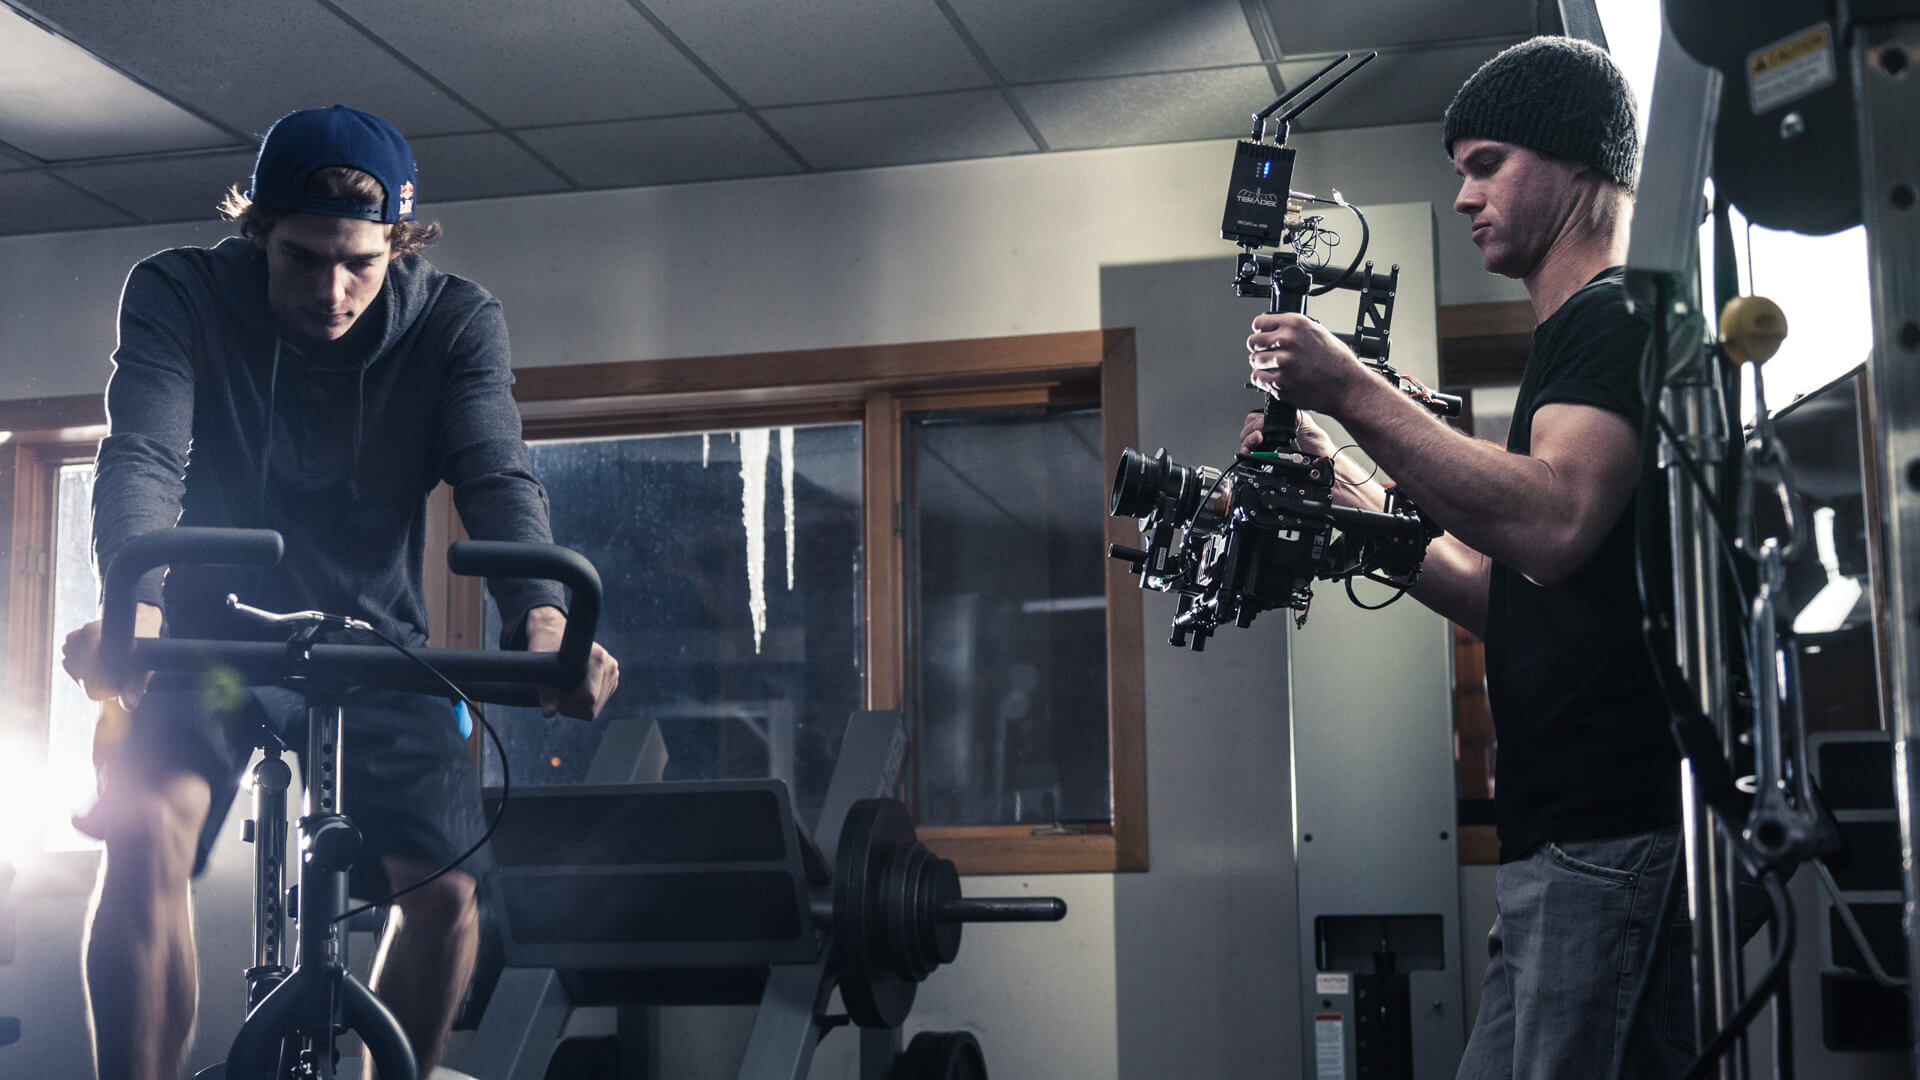 MoVI Operator Sam Nuttmann - Colorado - Red Bull Moments - Kowa Anamorphic lenses